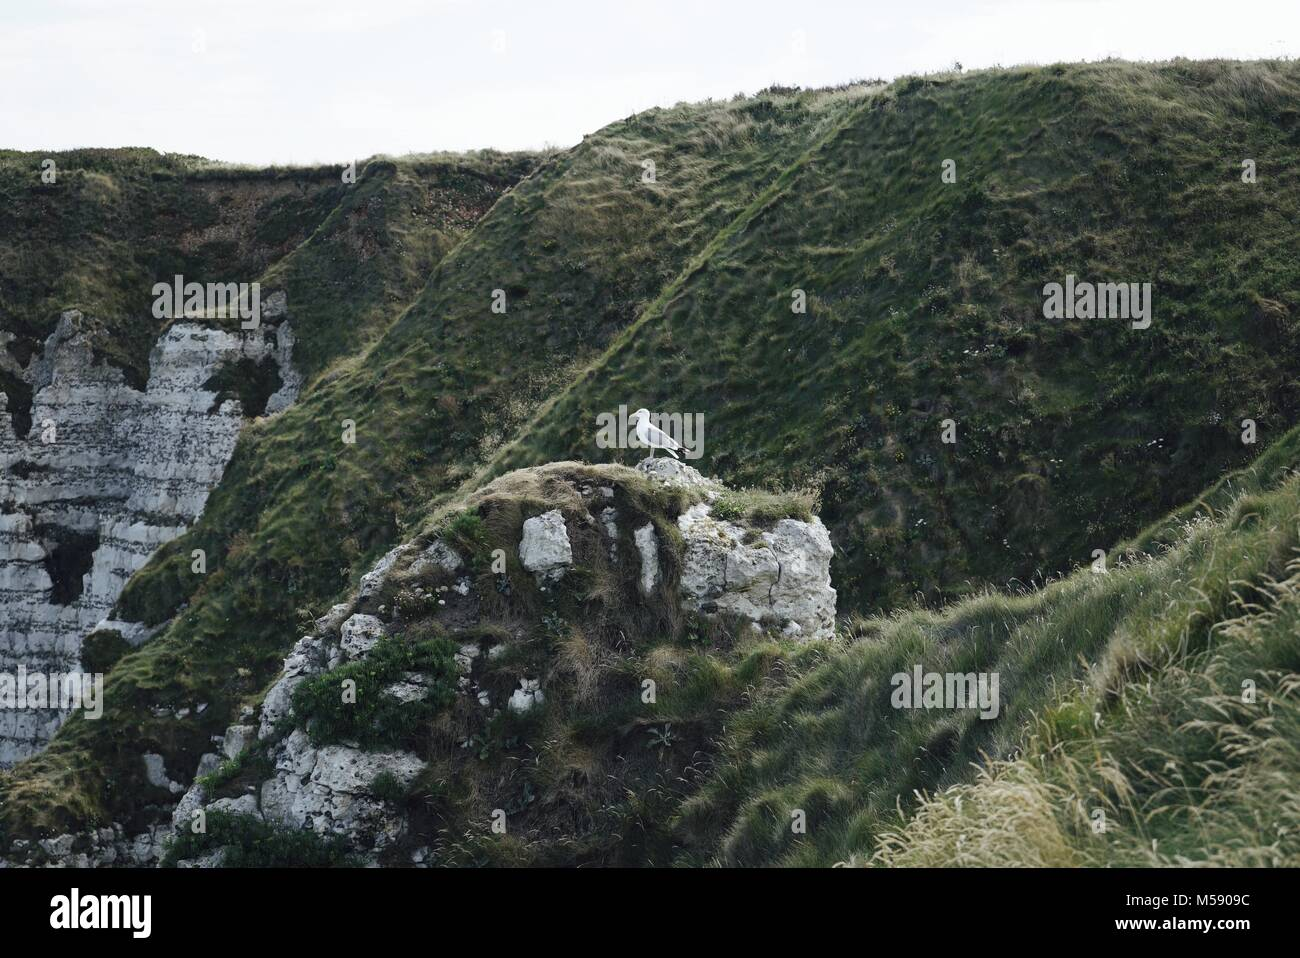 Seagull standing on top of a grassy cliff, with etretat white chalk cliffs in the bakground - Stock Image